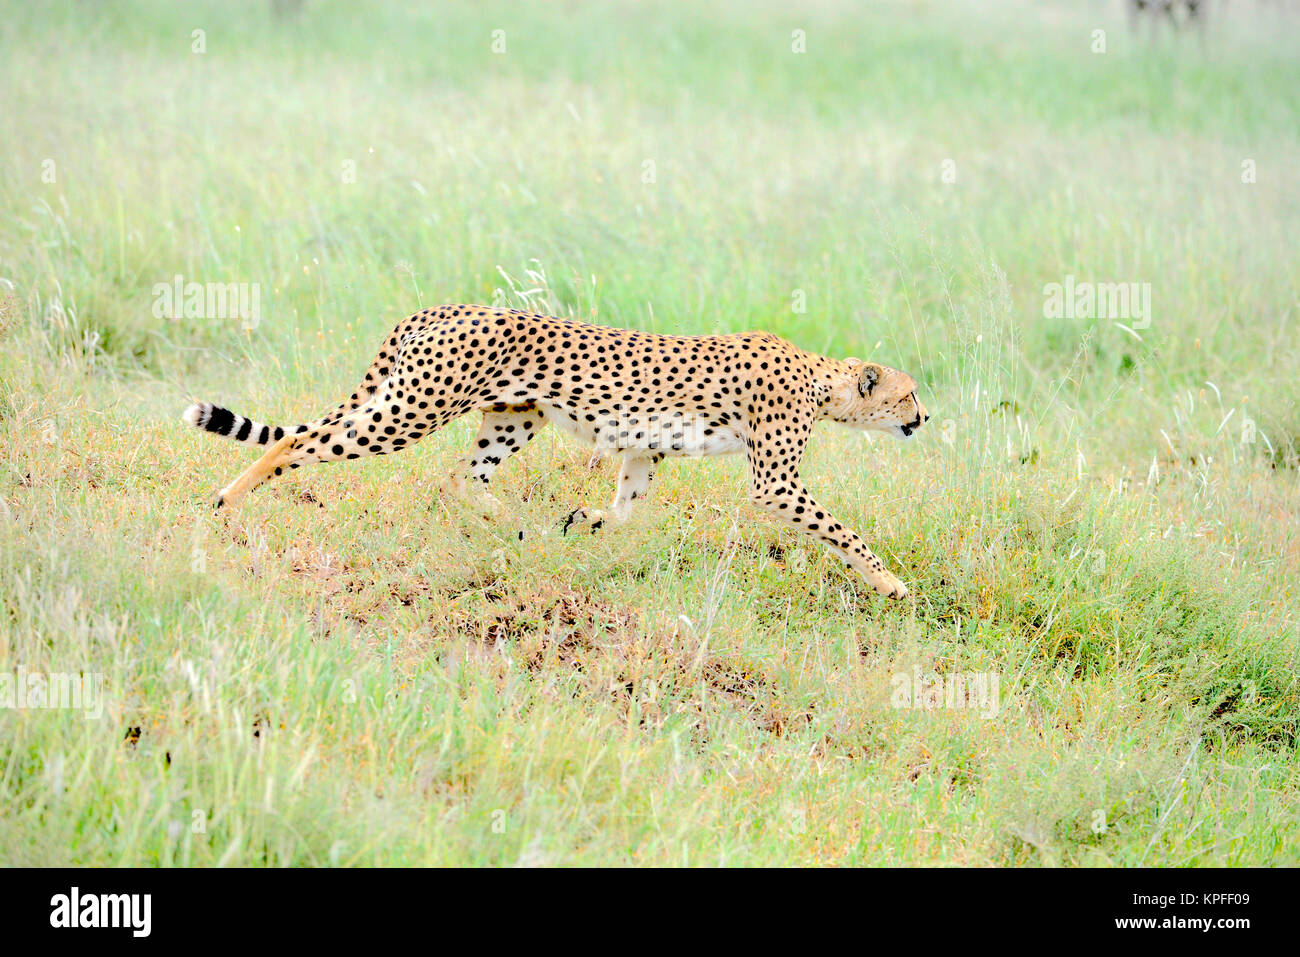 Wildlife sightseeing in one of the prime wildlife destinations on earht -- Serengeti, Tanzania. Male cheetah on - Stock Image